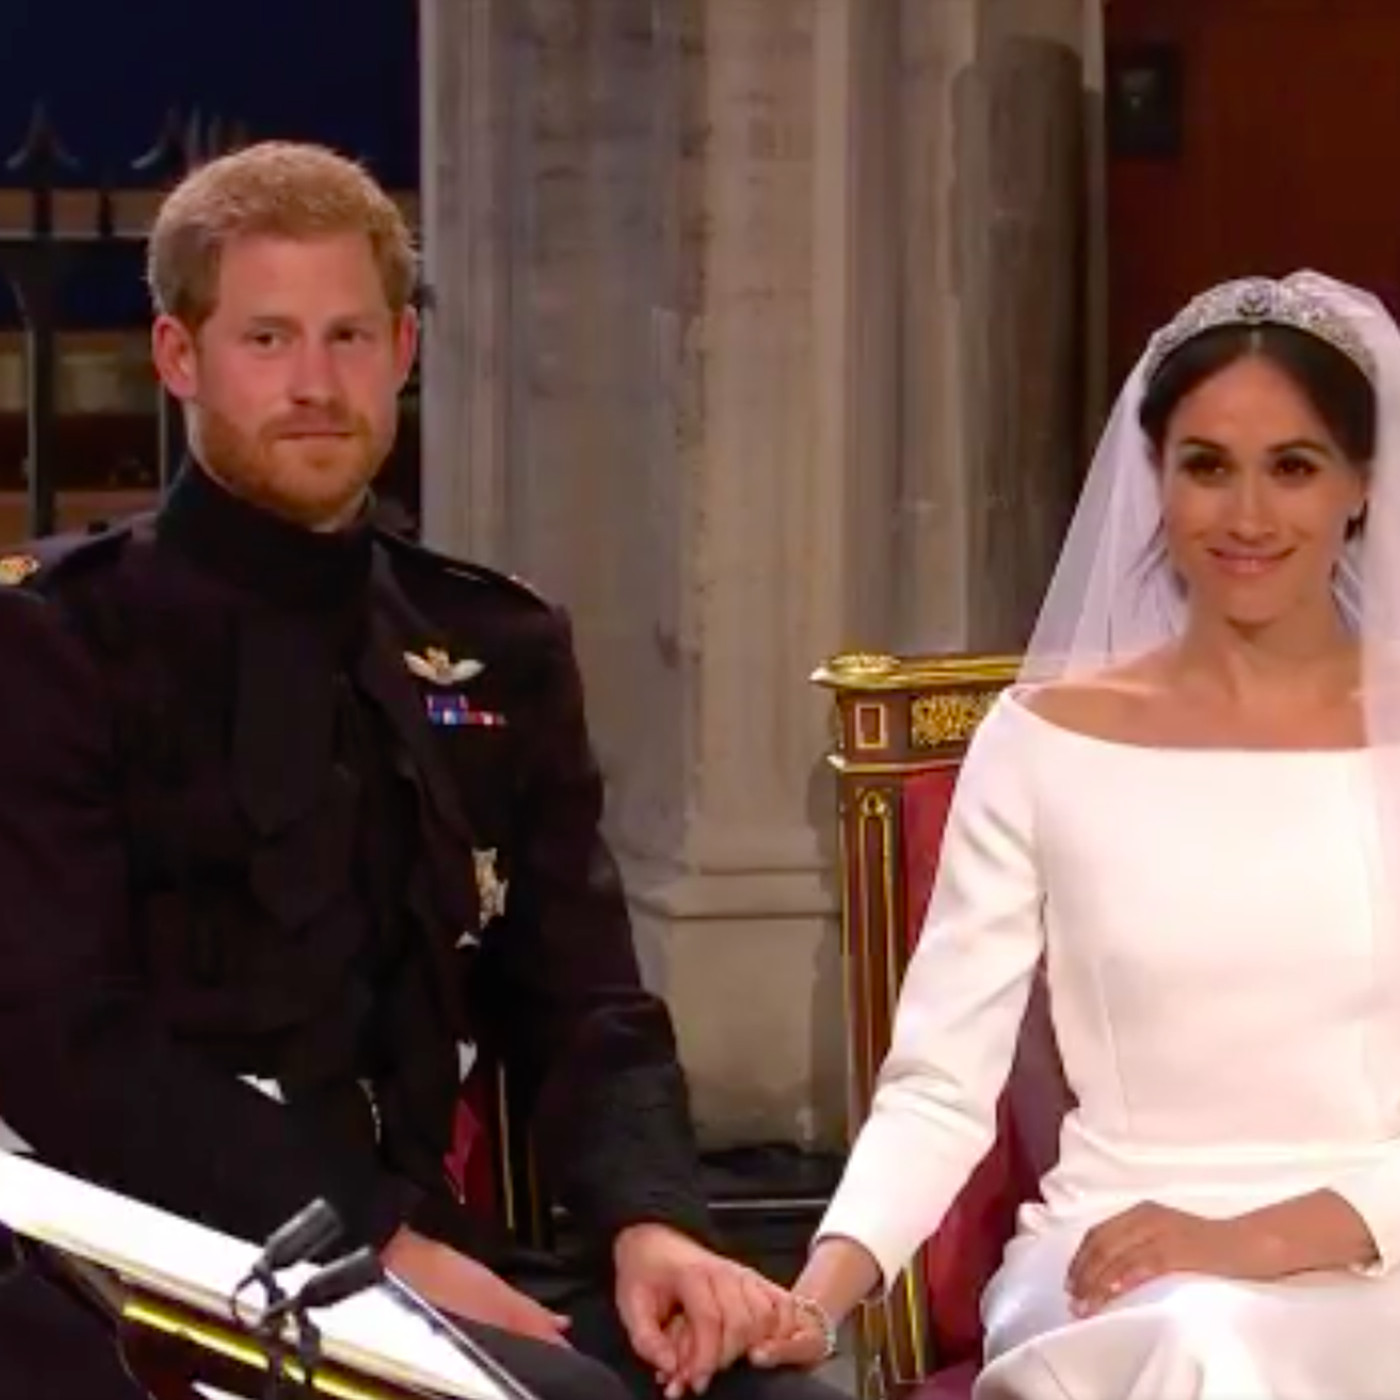 Royal Wedding recap: Highlights from Prince Harry and Meghan